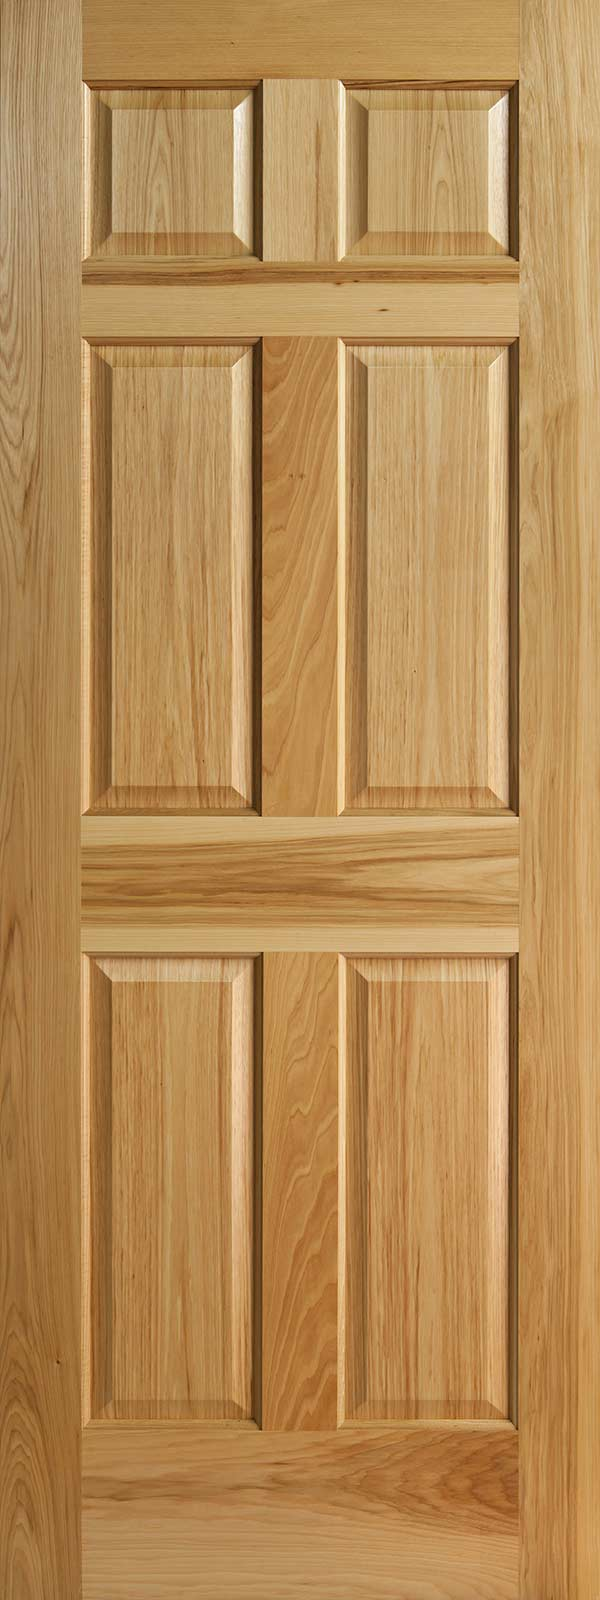 Hickory 6 panel interior doors with raised panels for Solid wood panel interior doors